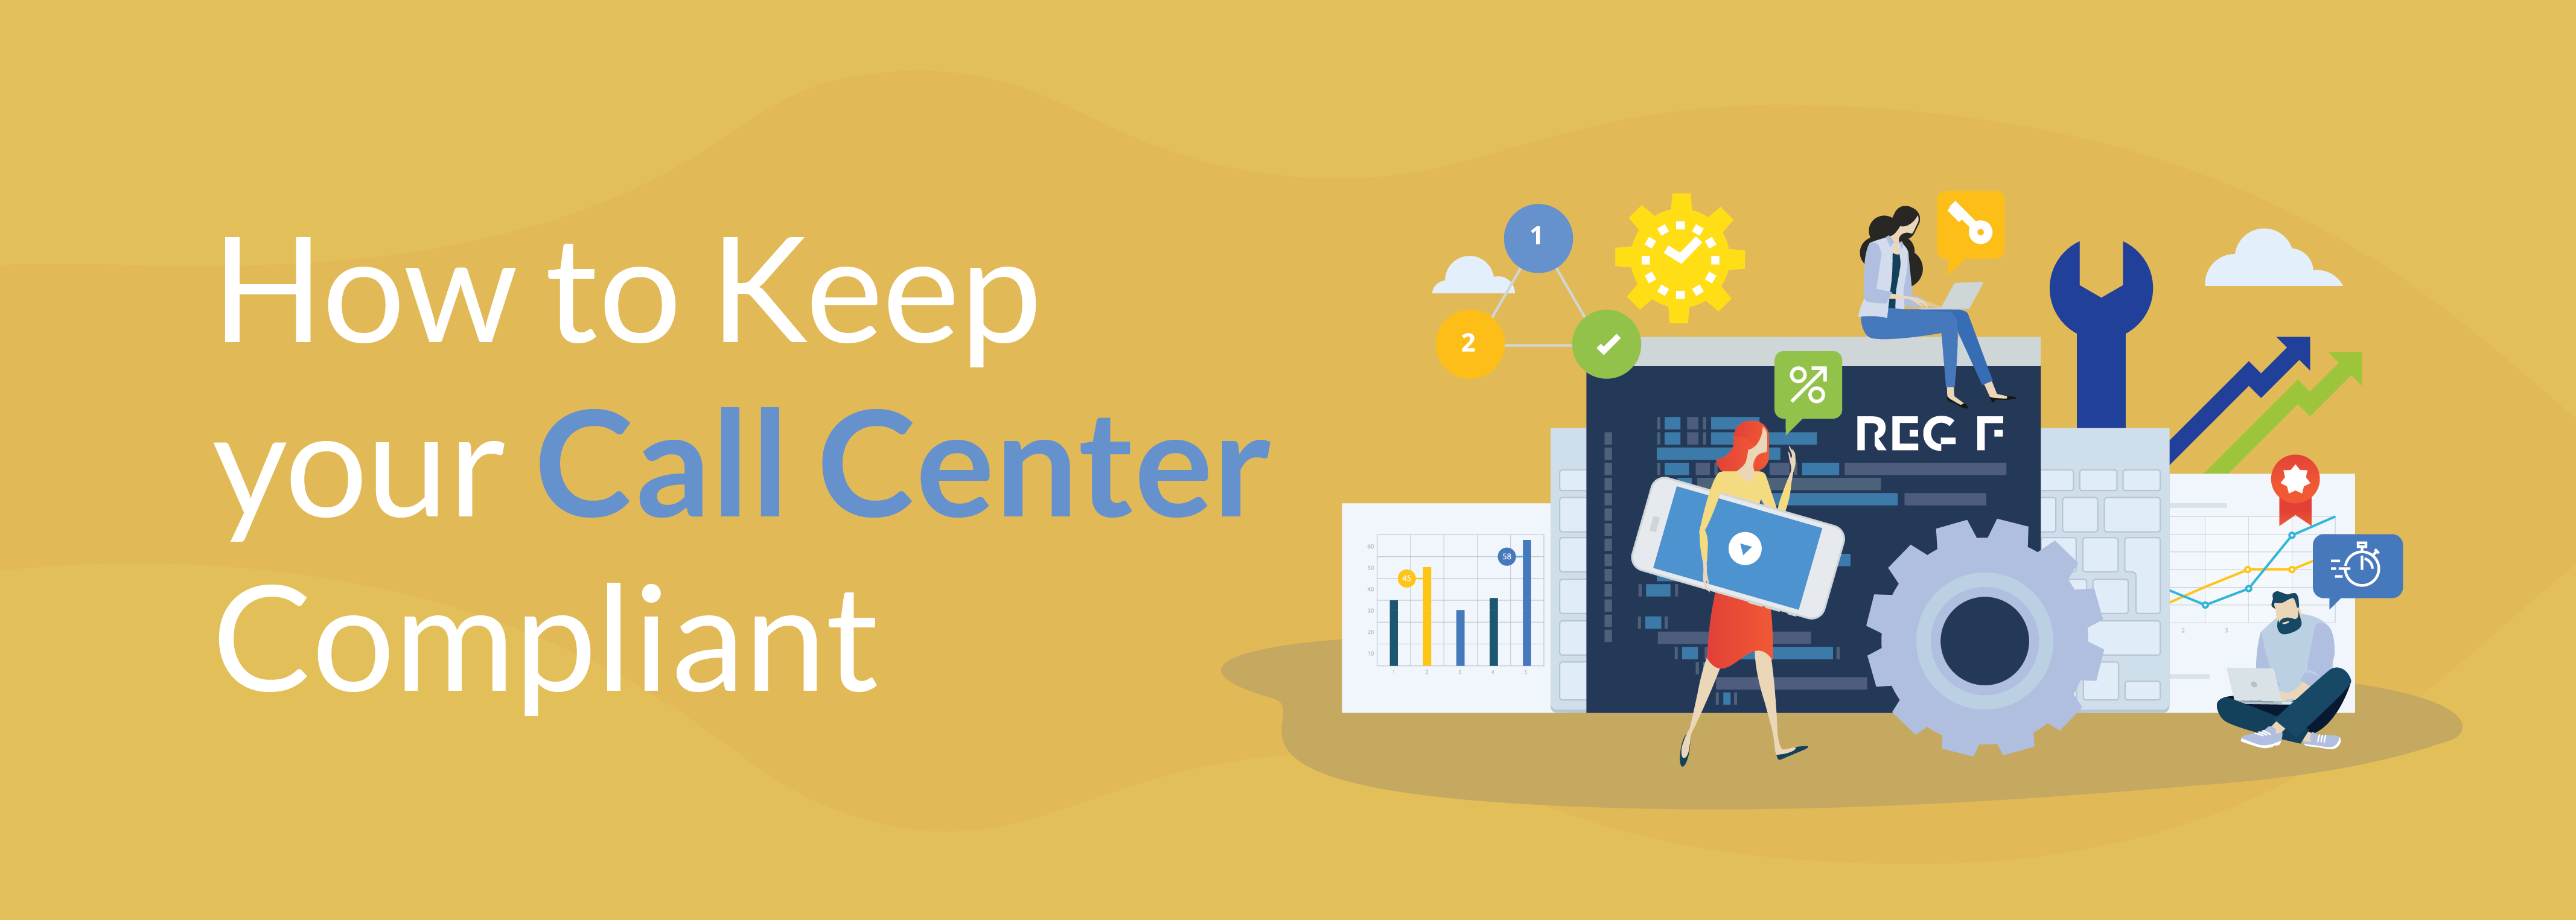 How to Keep your Call Center Compliant